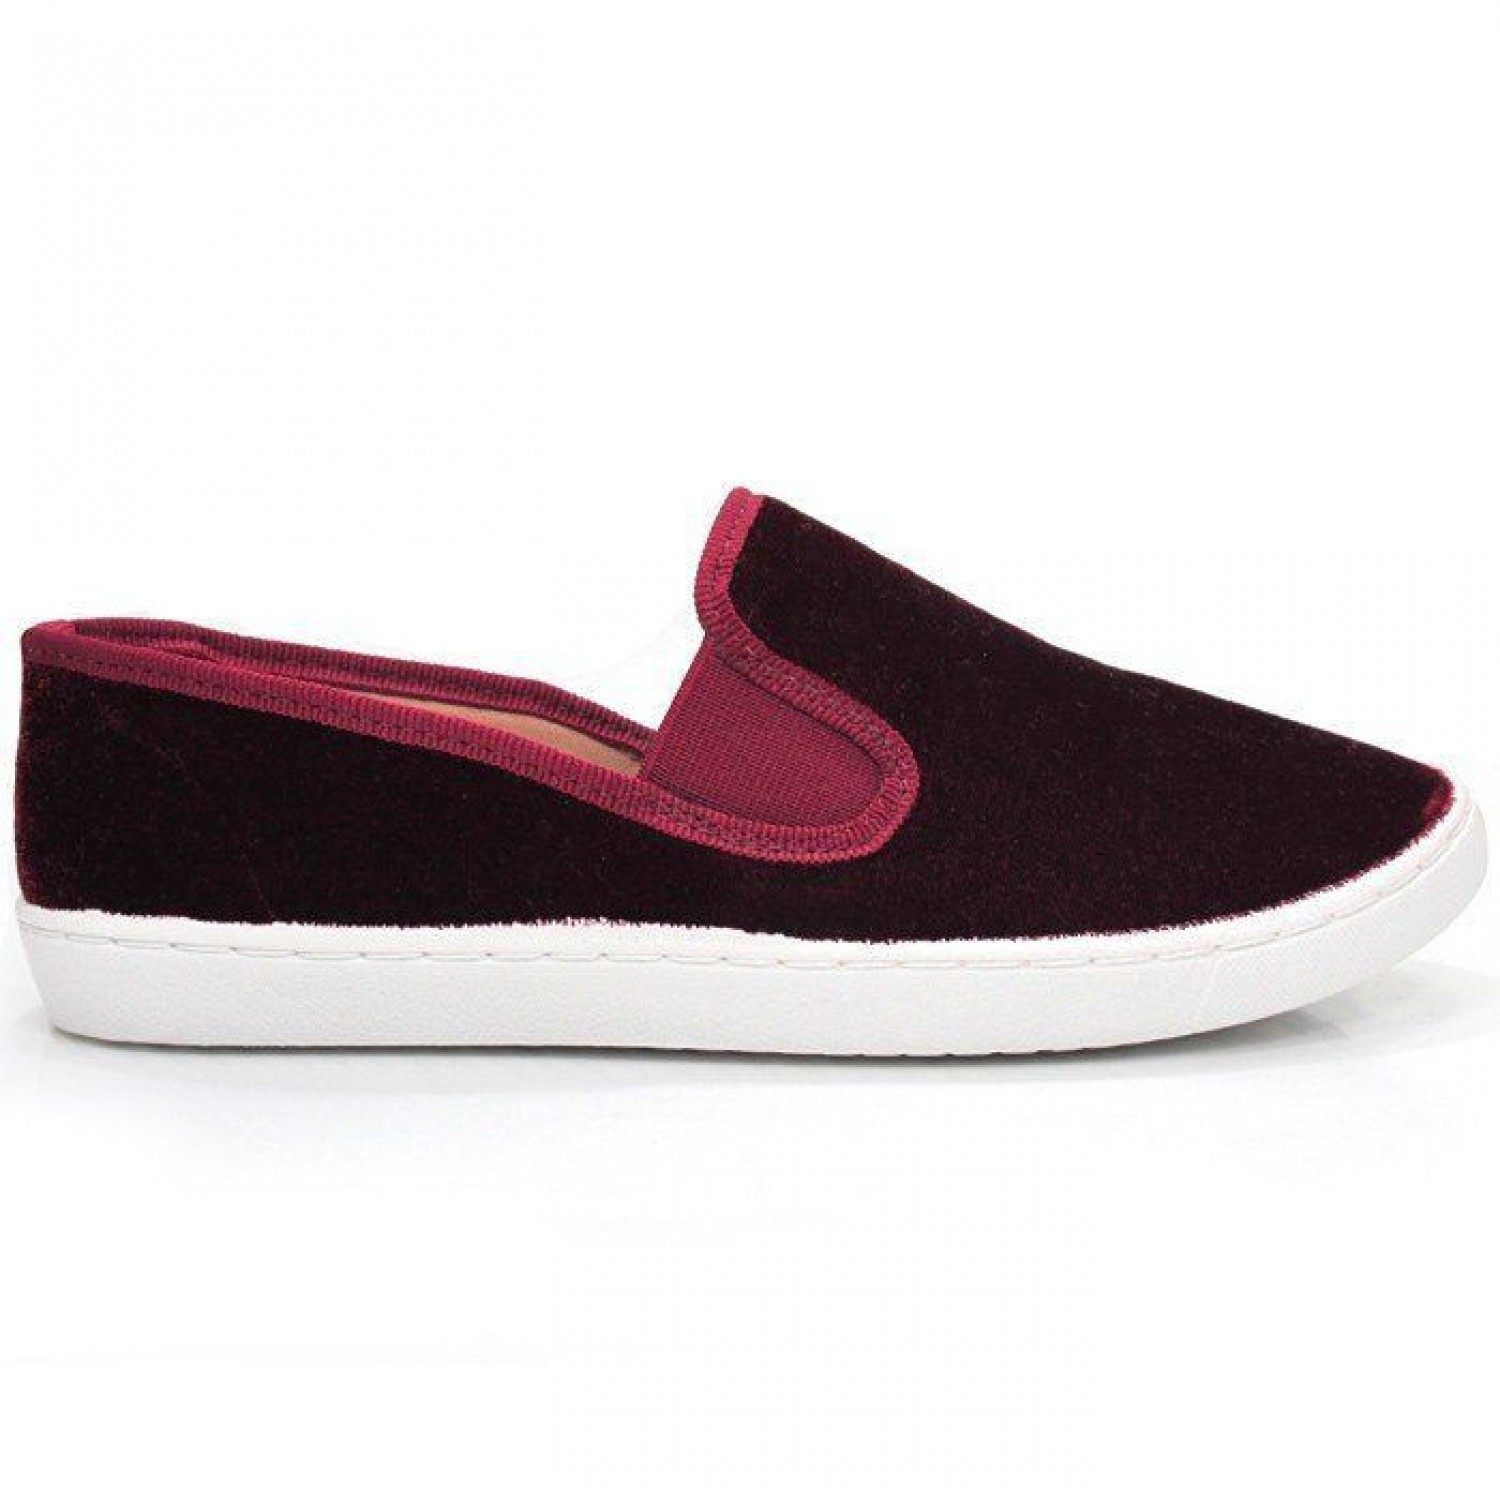 TÊNIS SLIP ON VELUDO BORDÔ